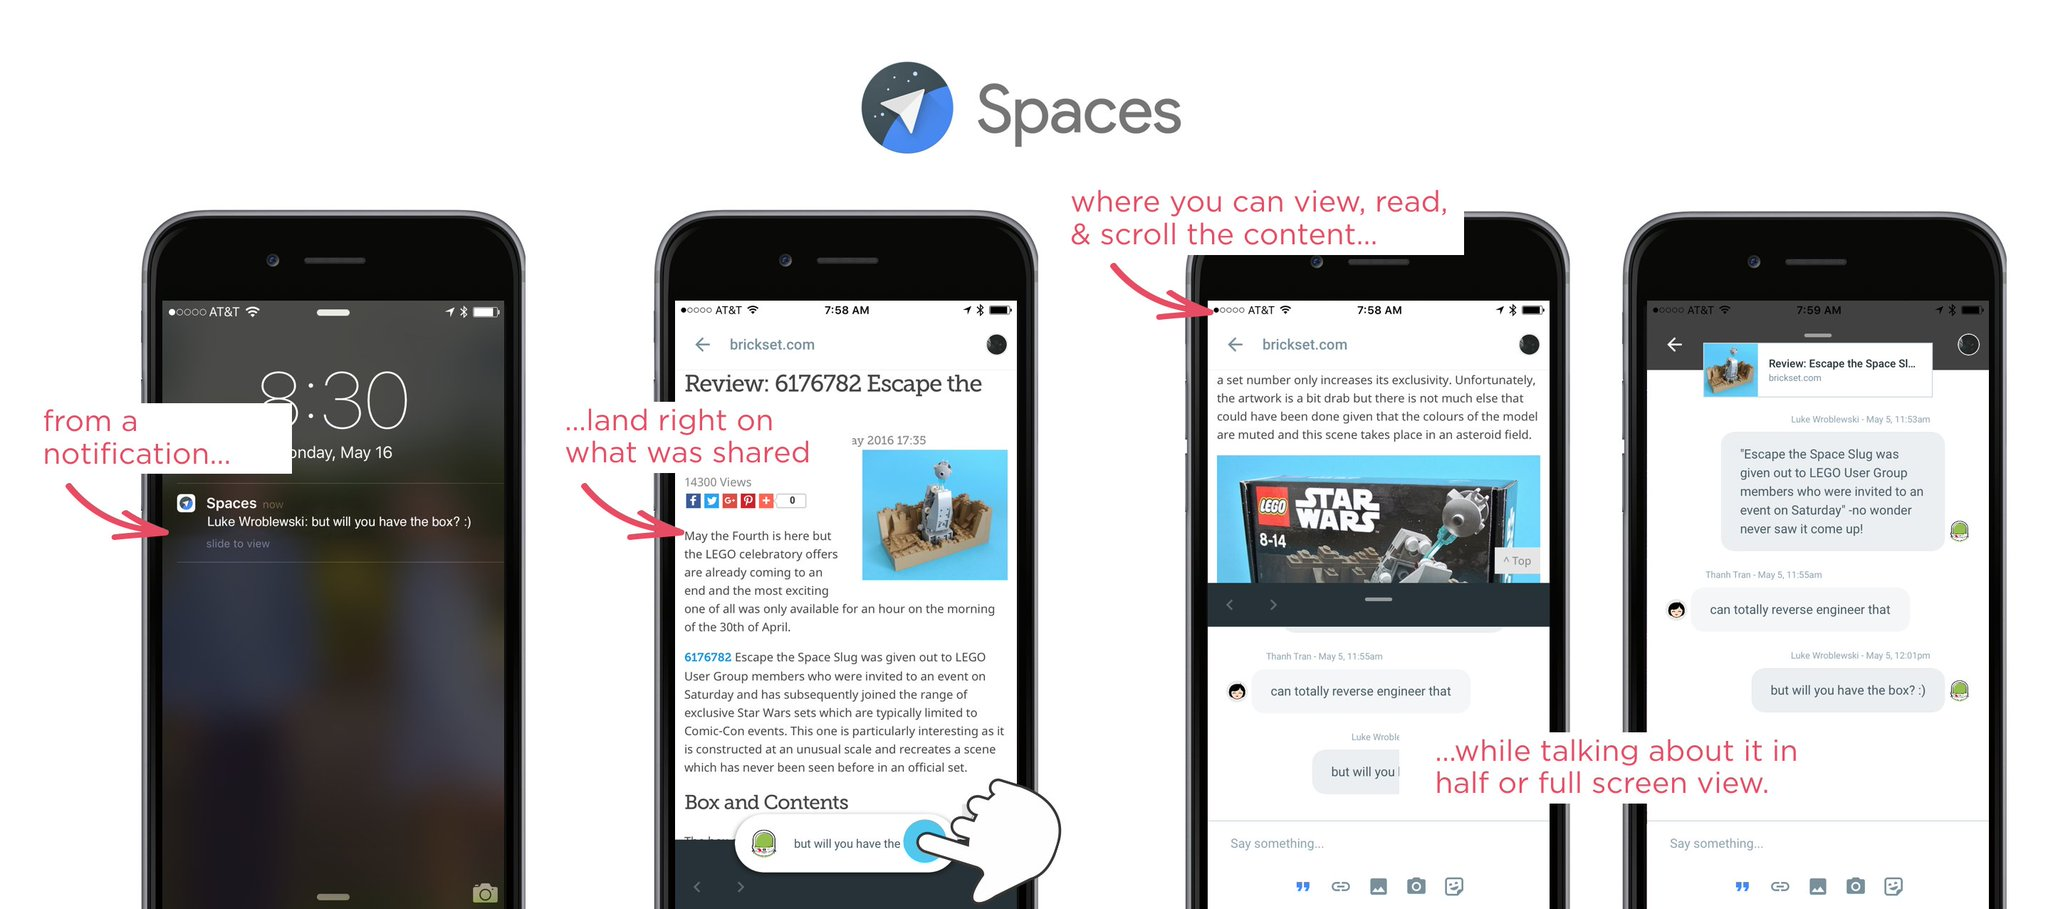 In Spaces, you can see, read, scroll, etc. what people are talking about while discussing it. https://t.co/XceJcrFAv6